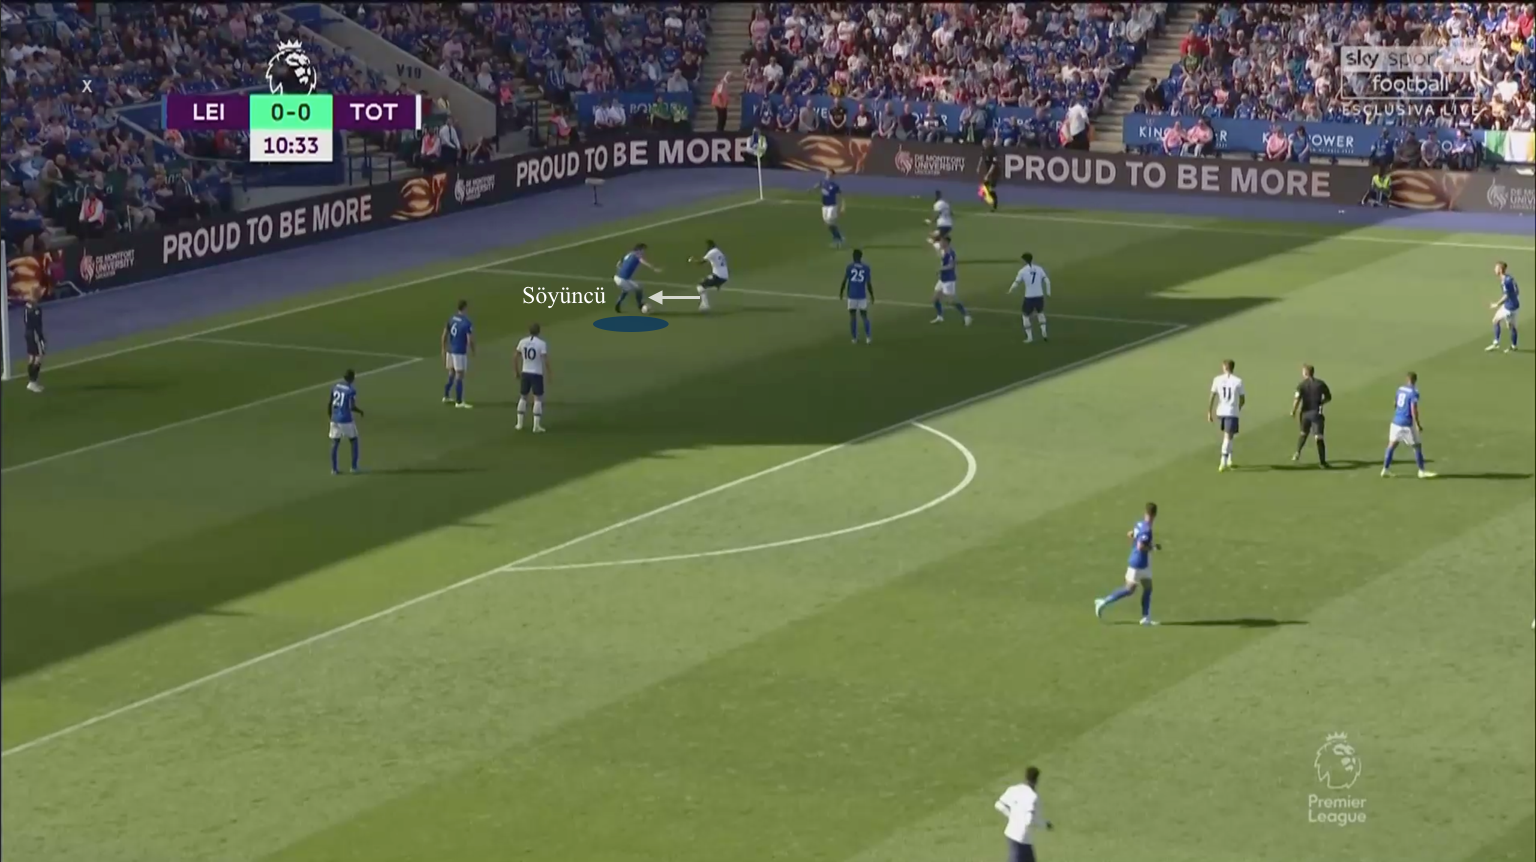 Premier League 2019/20: Leicester City vs Tottenham Hotspur - tactical analysis tactics